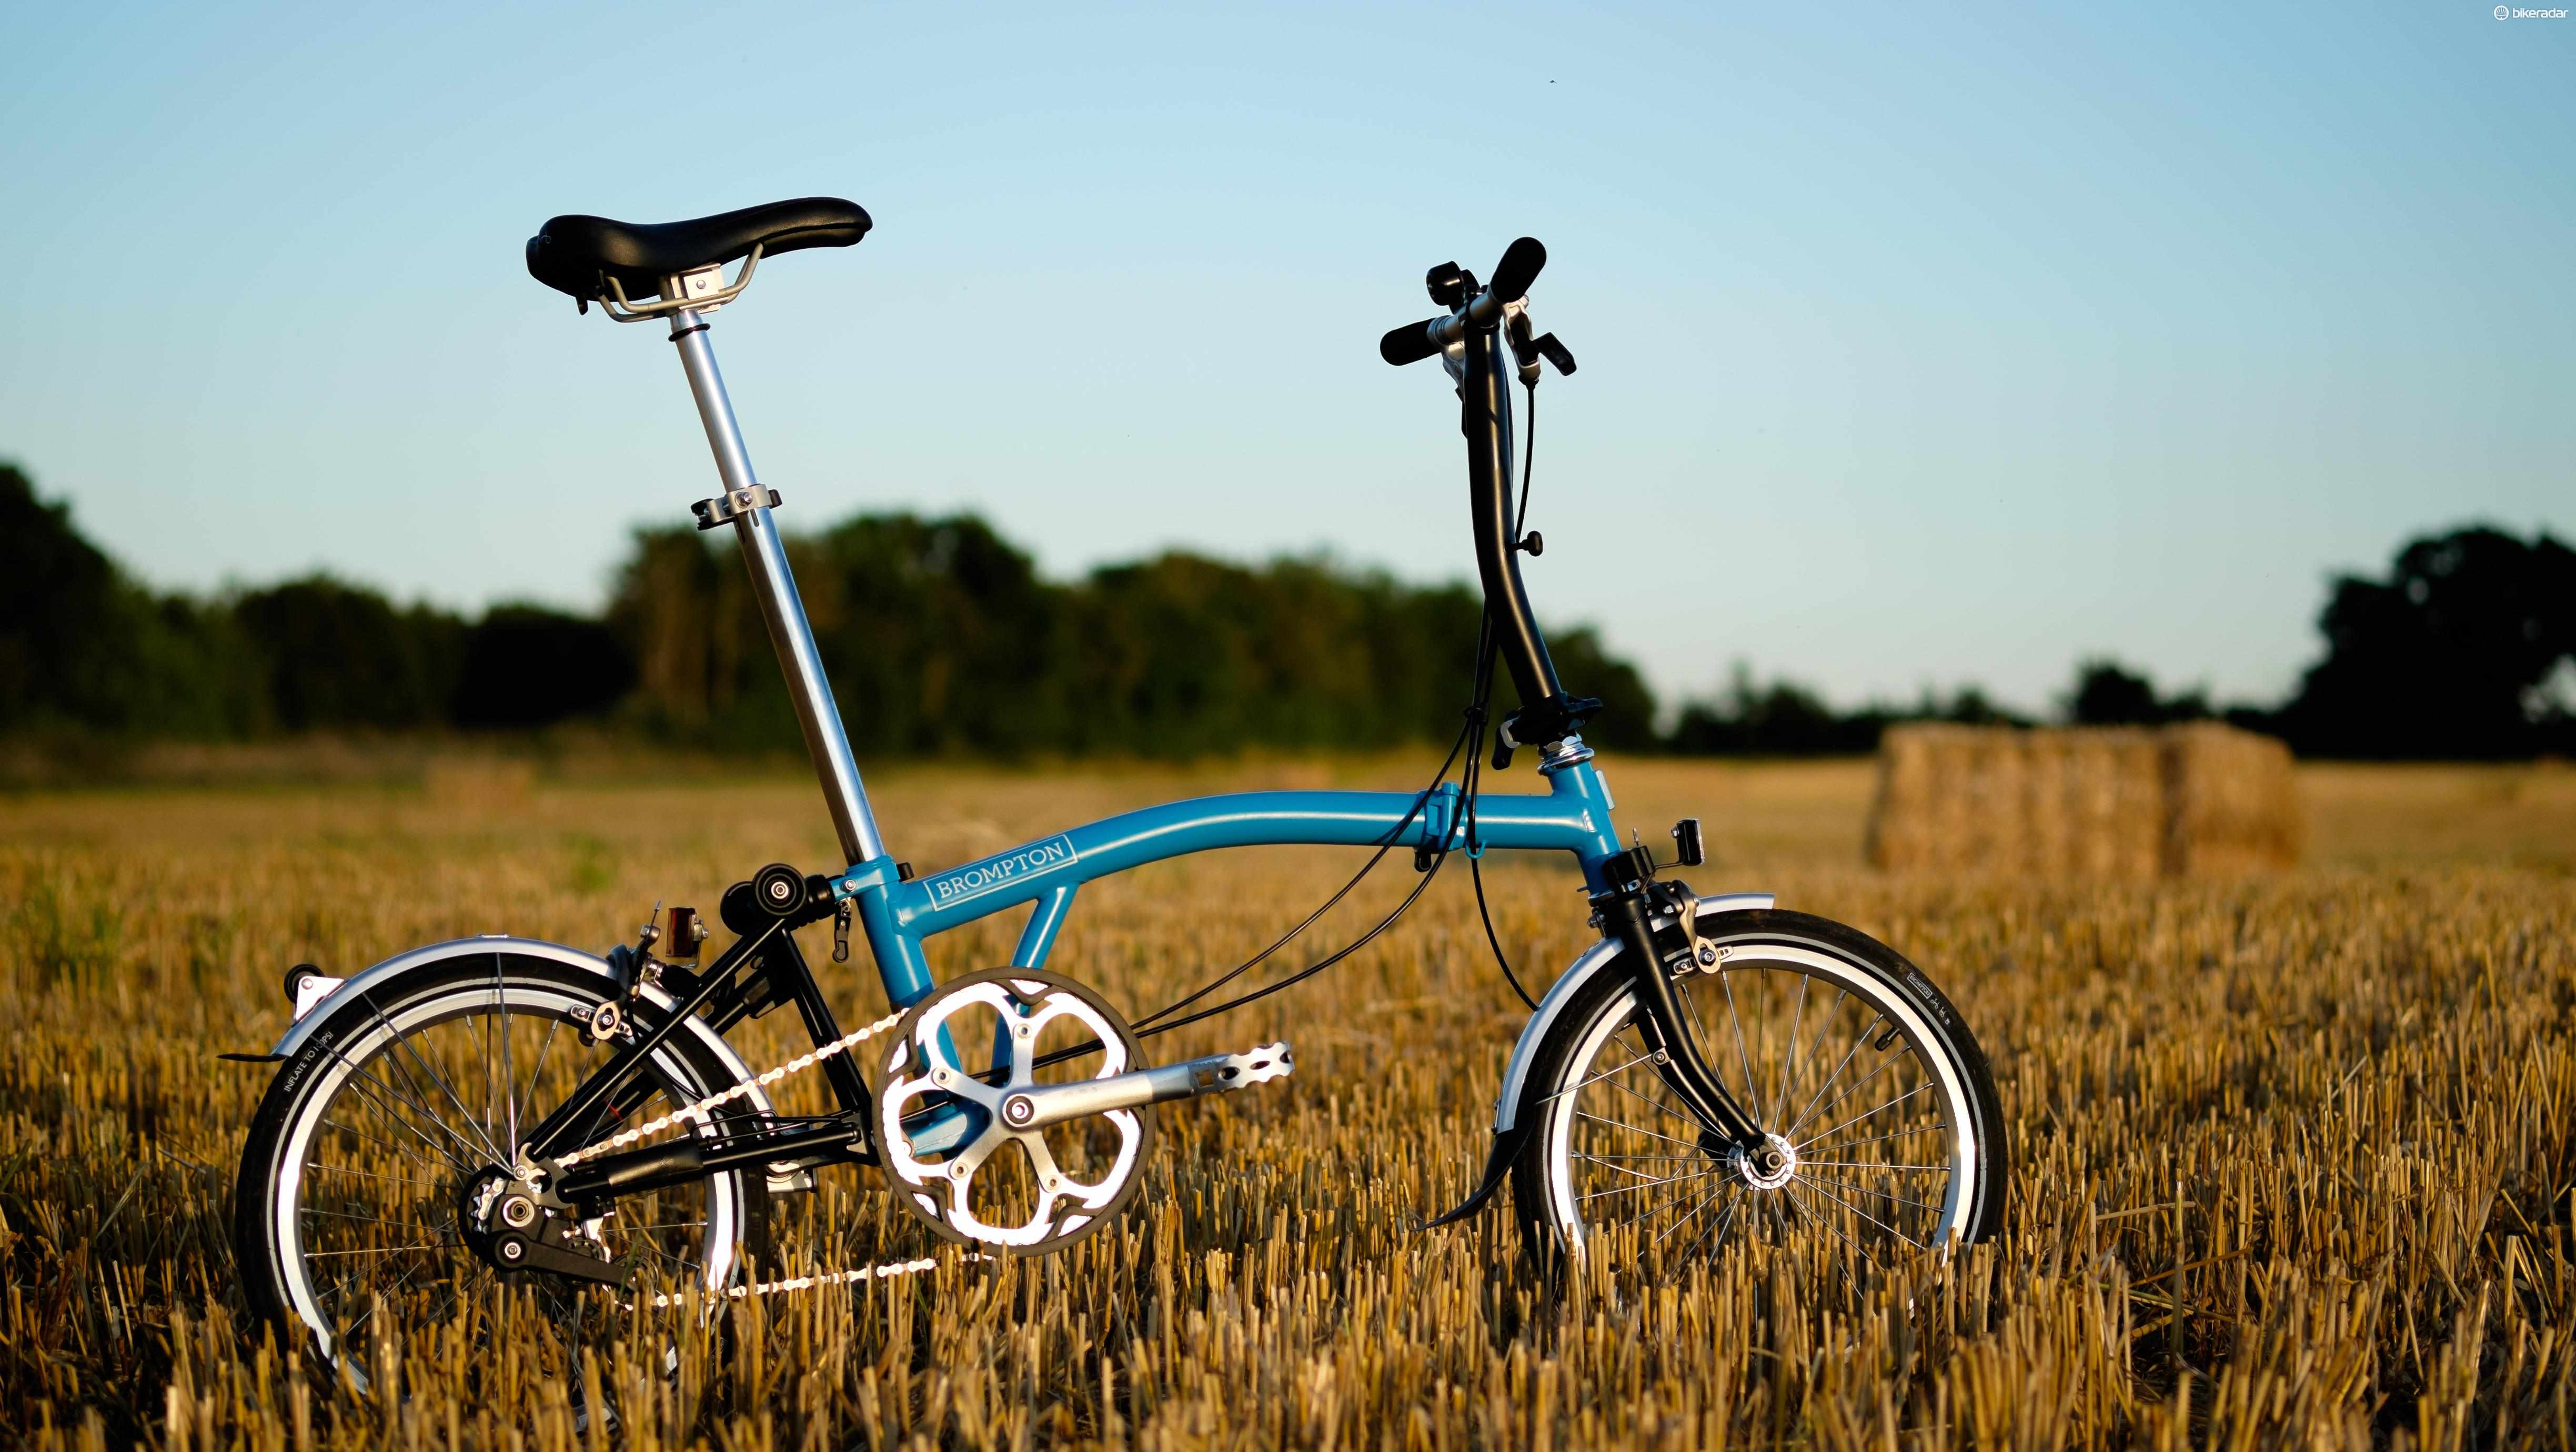 The Brompton S2L is just one of a huge number of configurations that Brompton offers its customers